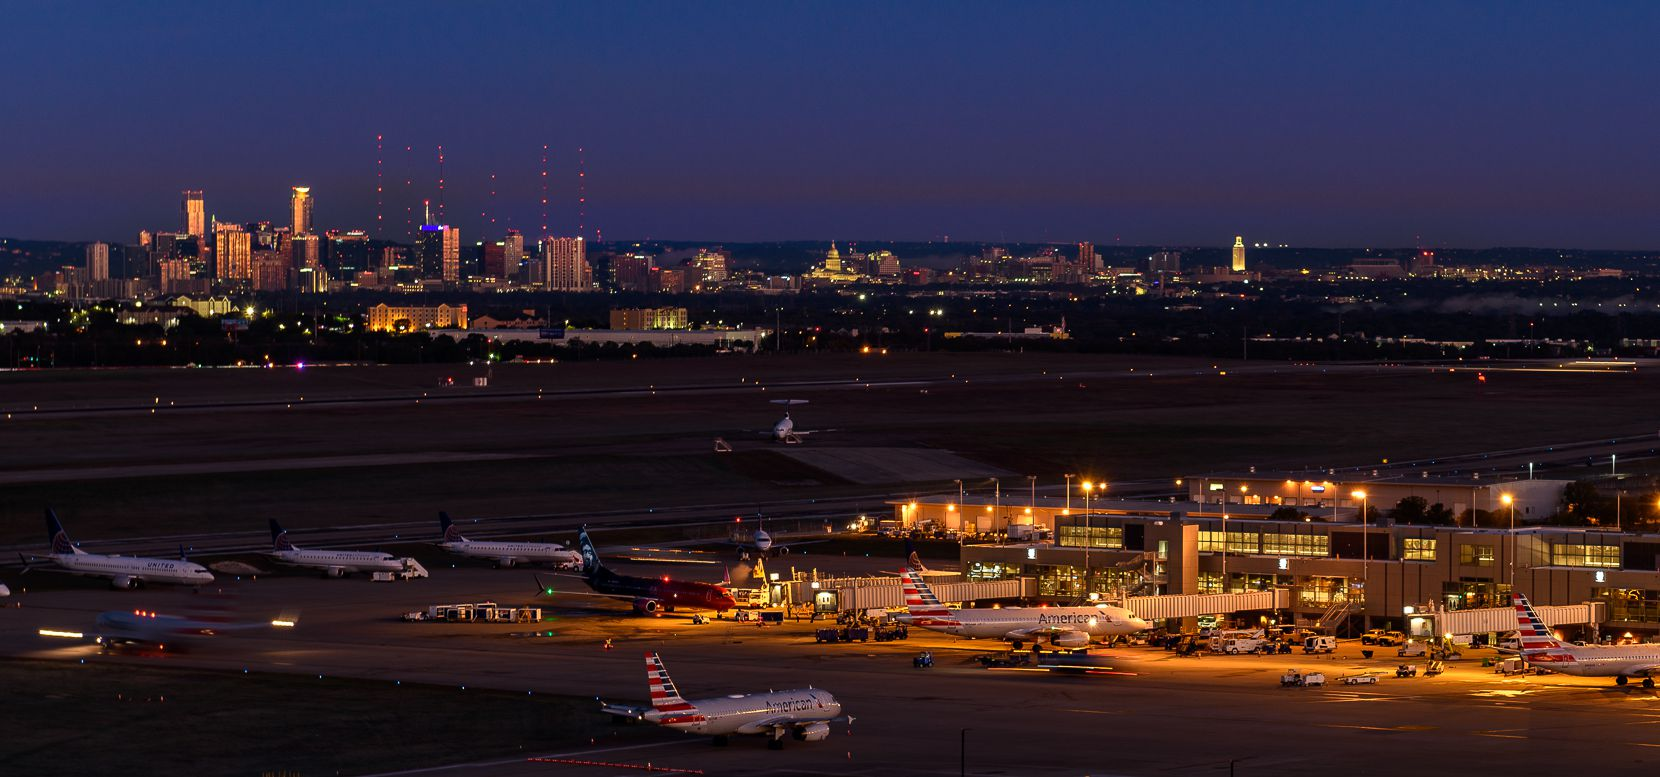 A nighttime view of Austin-Bergstrom International Airport with the city of Austin in the distance.